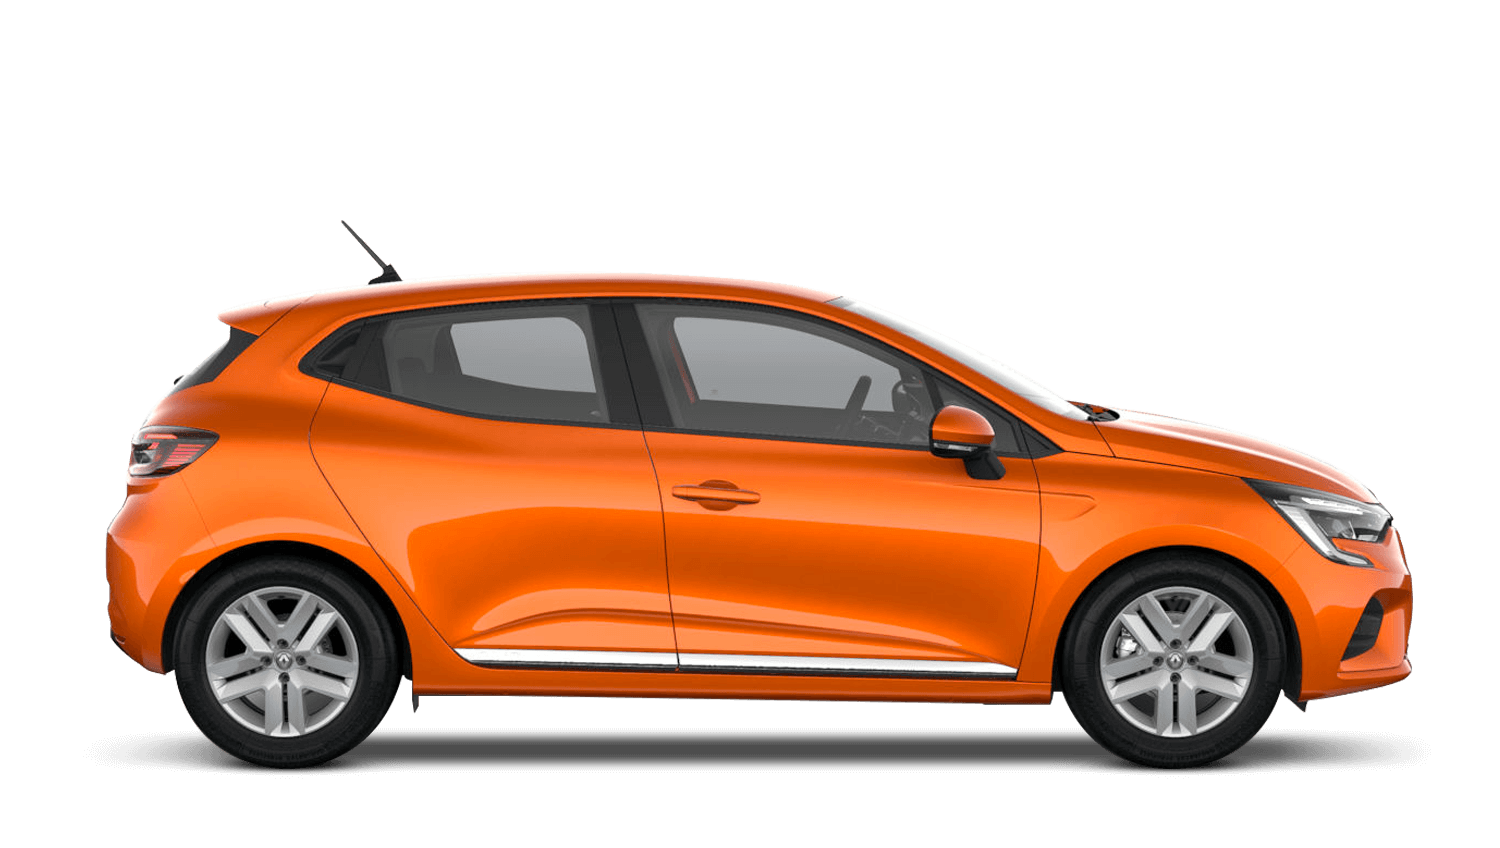 Valencia Orange Renault Clio